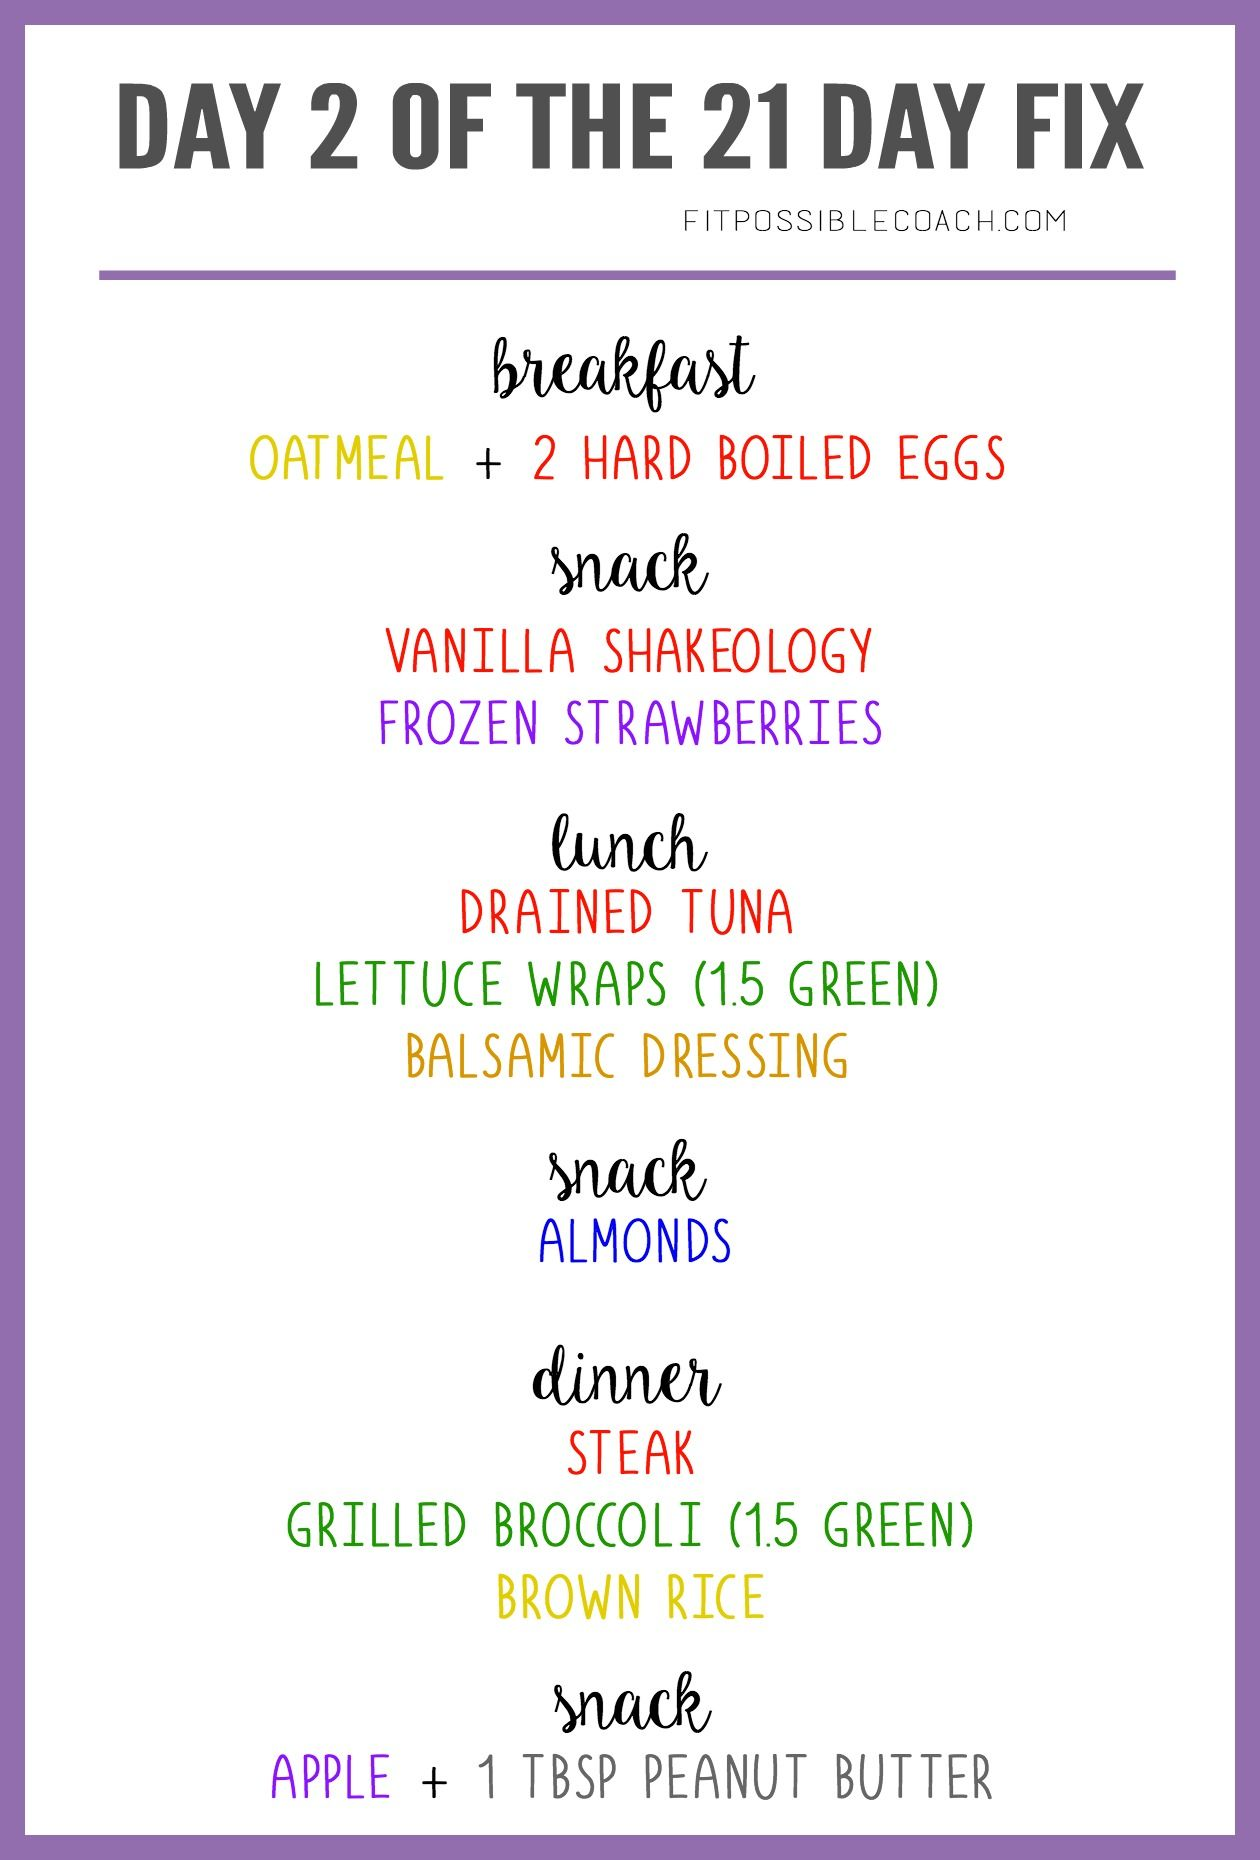 sample 21 day fix one day meal plan for bracket 1 1200 1499